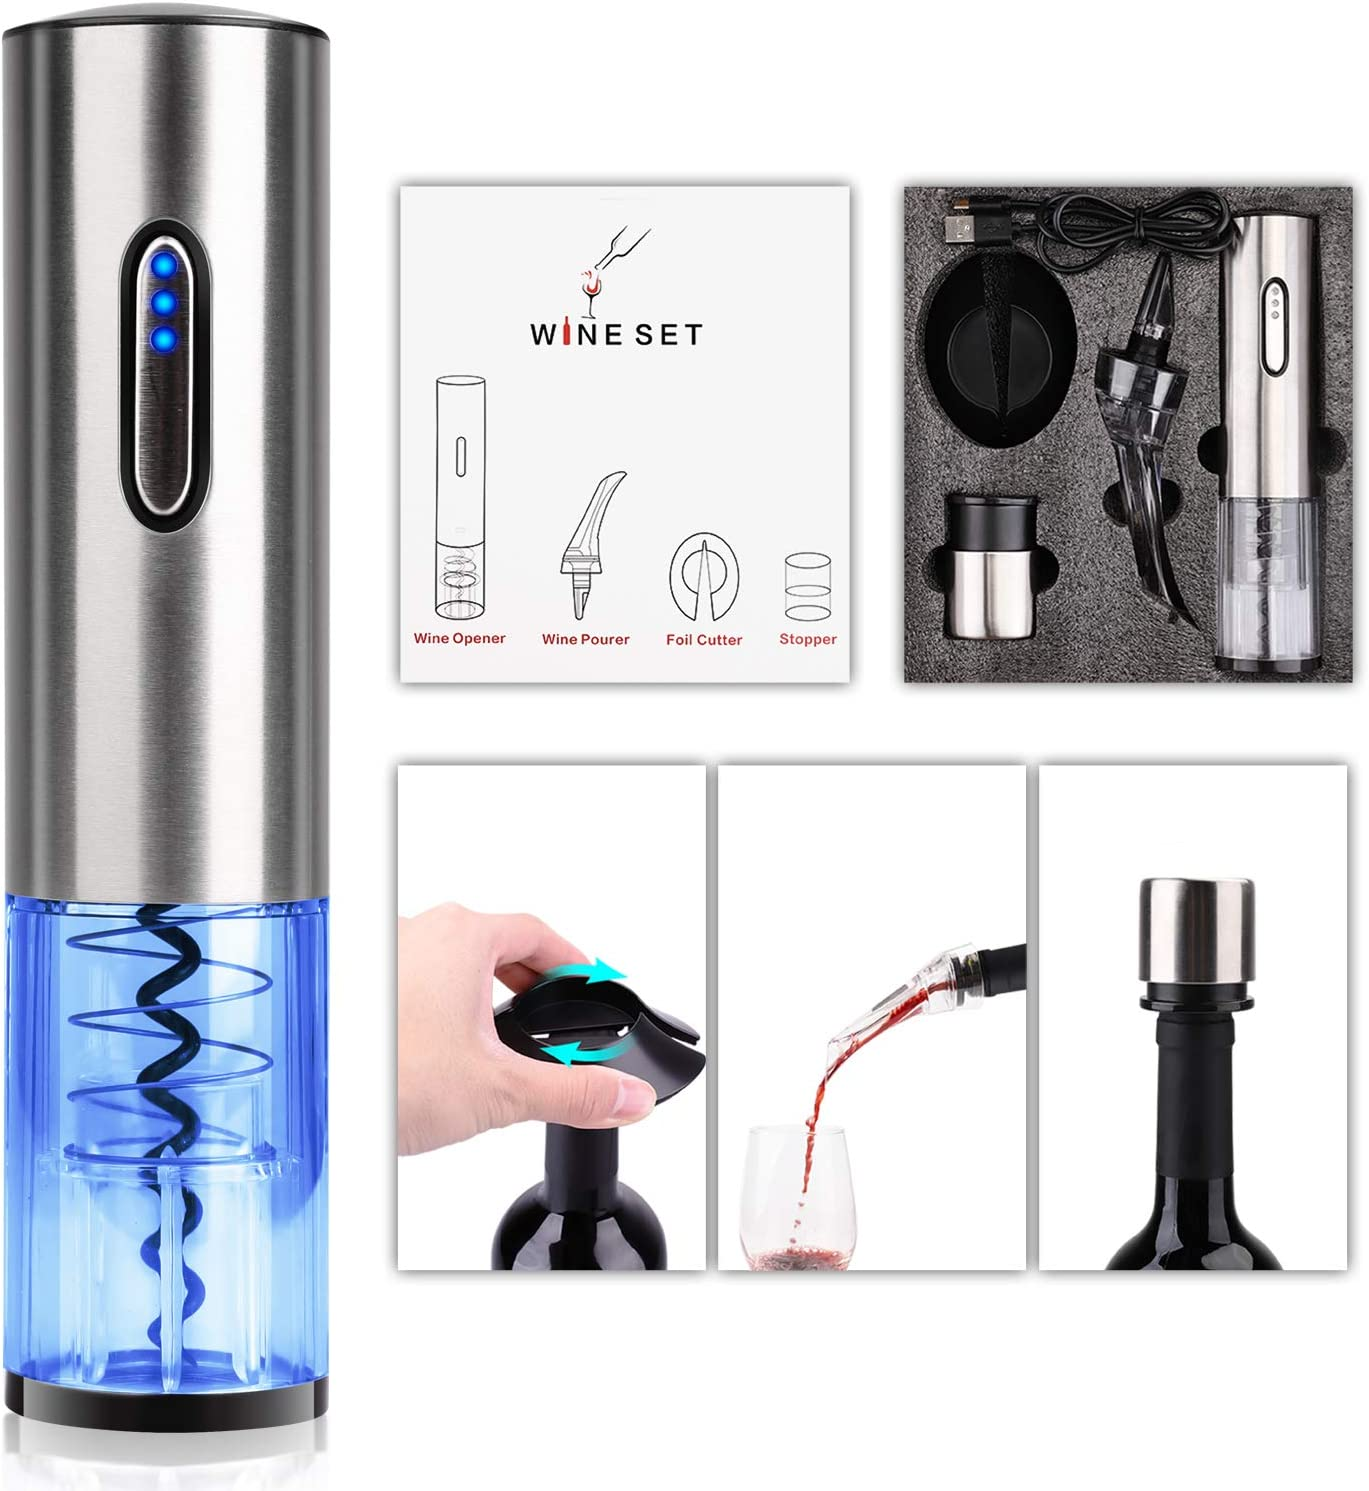 COMPONALL Electric Wine Opener Set, Premium Stainless Steel Electric Corkscrew, USB Rechargeable Cordless Wine Bottle Opener Kit with Foil Cutter, Wine Pourer, Vacuum Wine Bottle Stopper